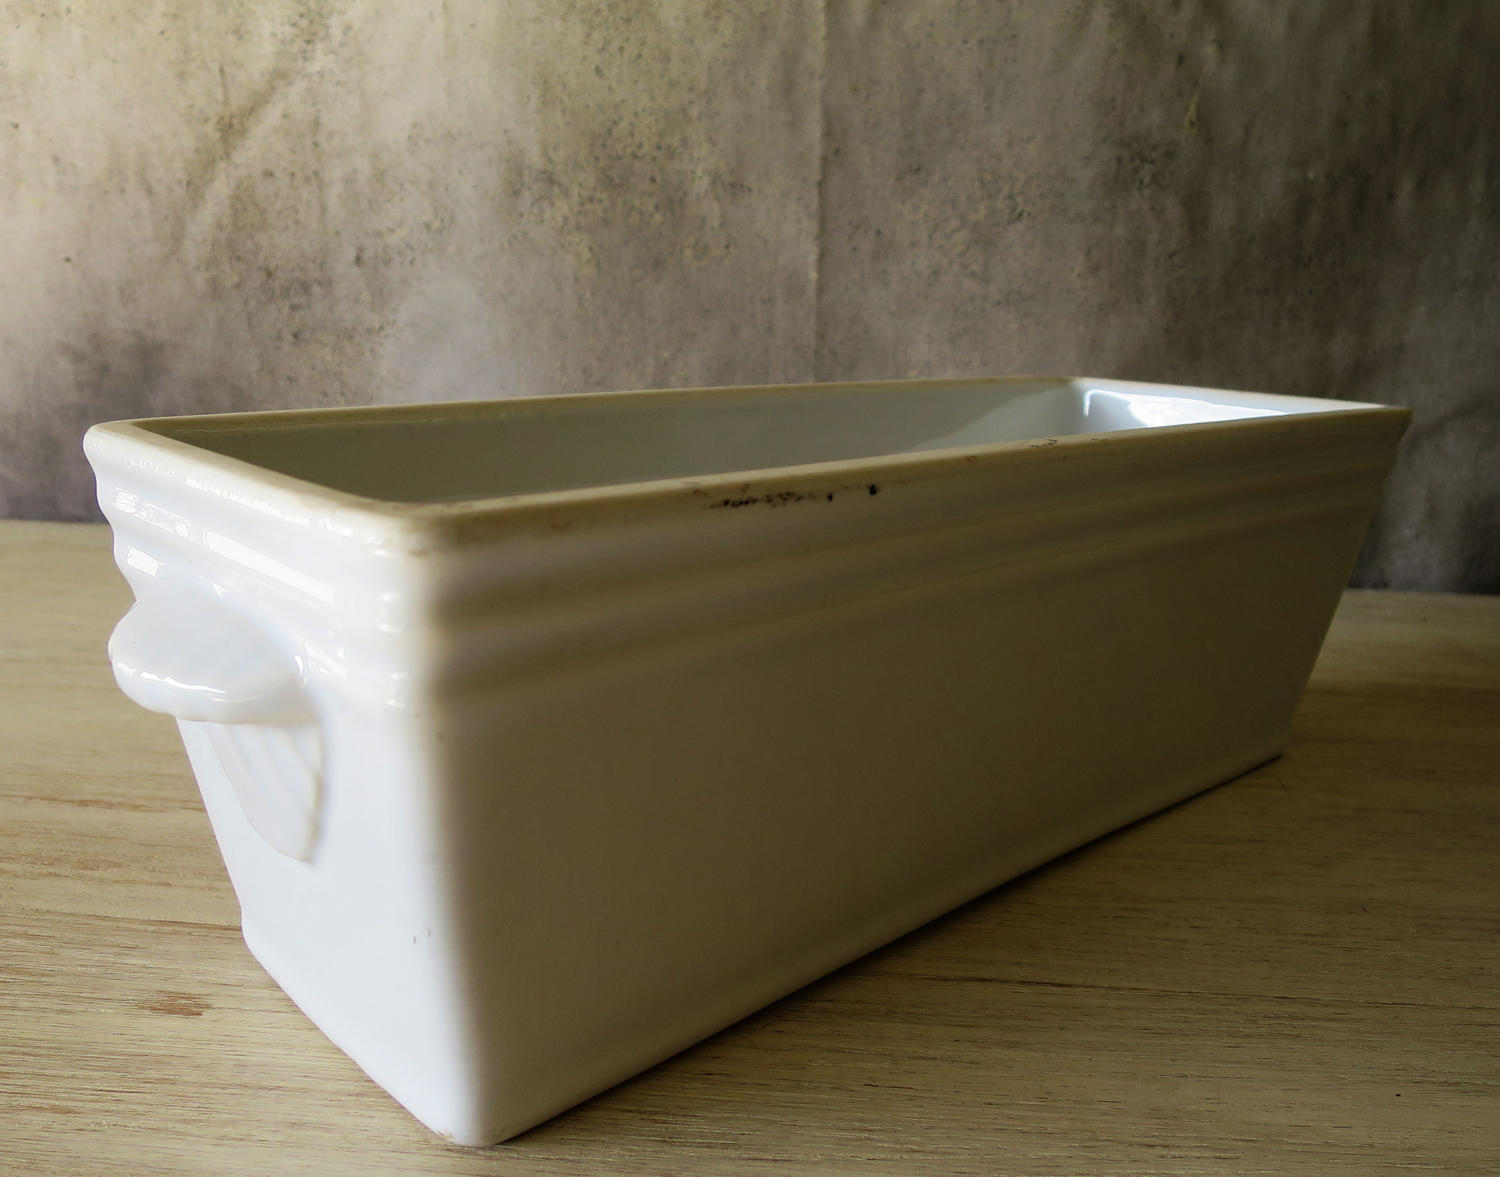 French heavy porcelain Pate Tureen circa 1920